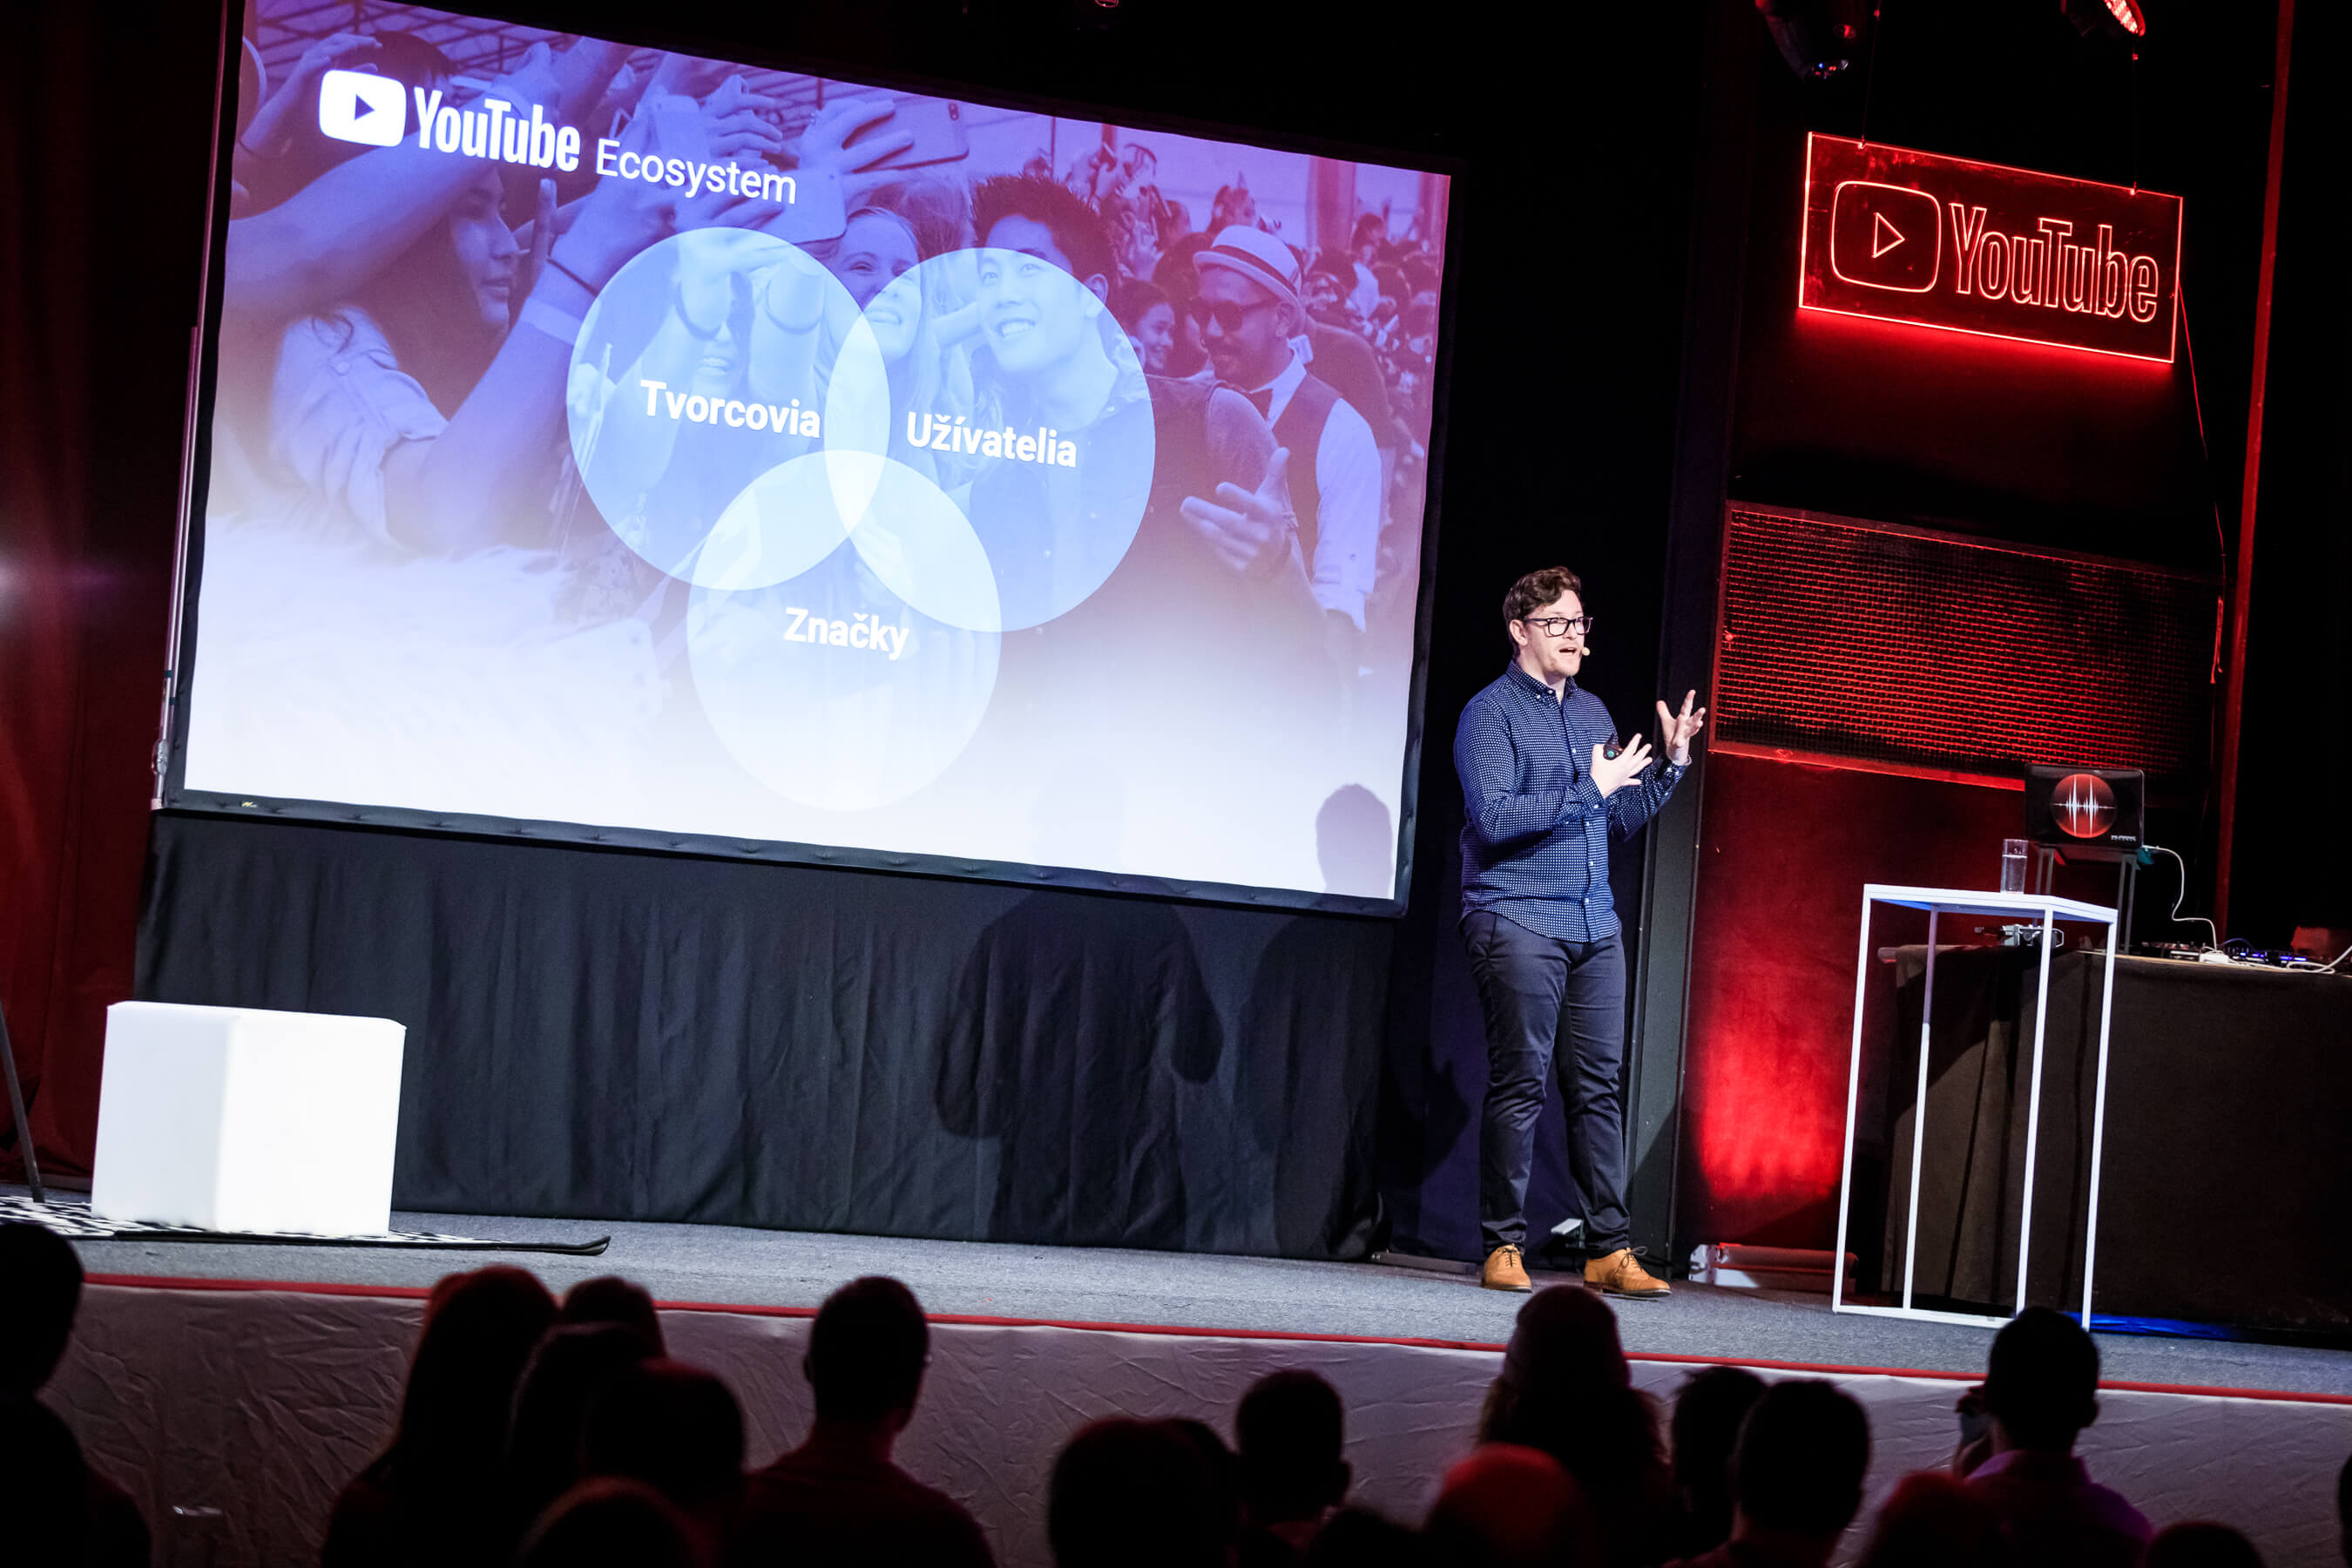 YouTube conference